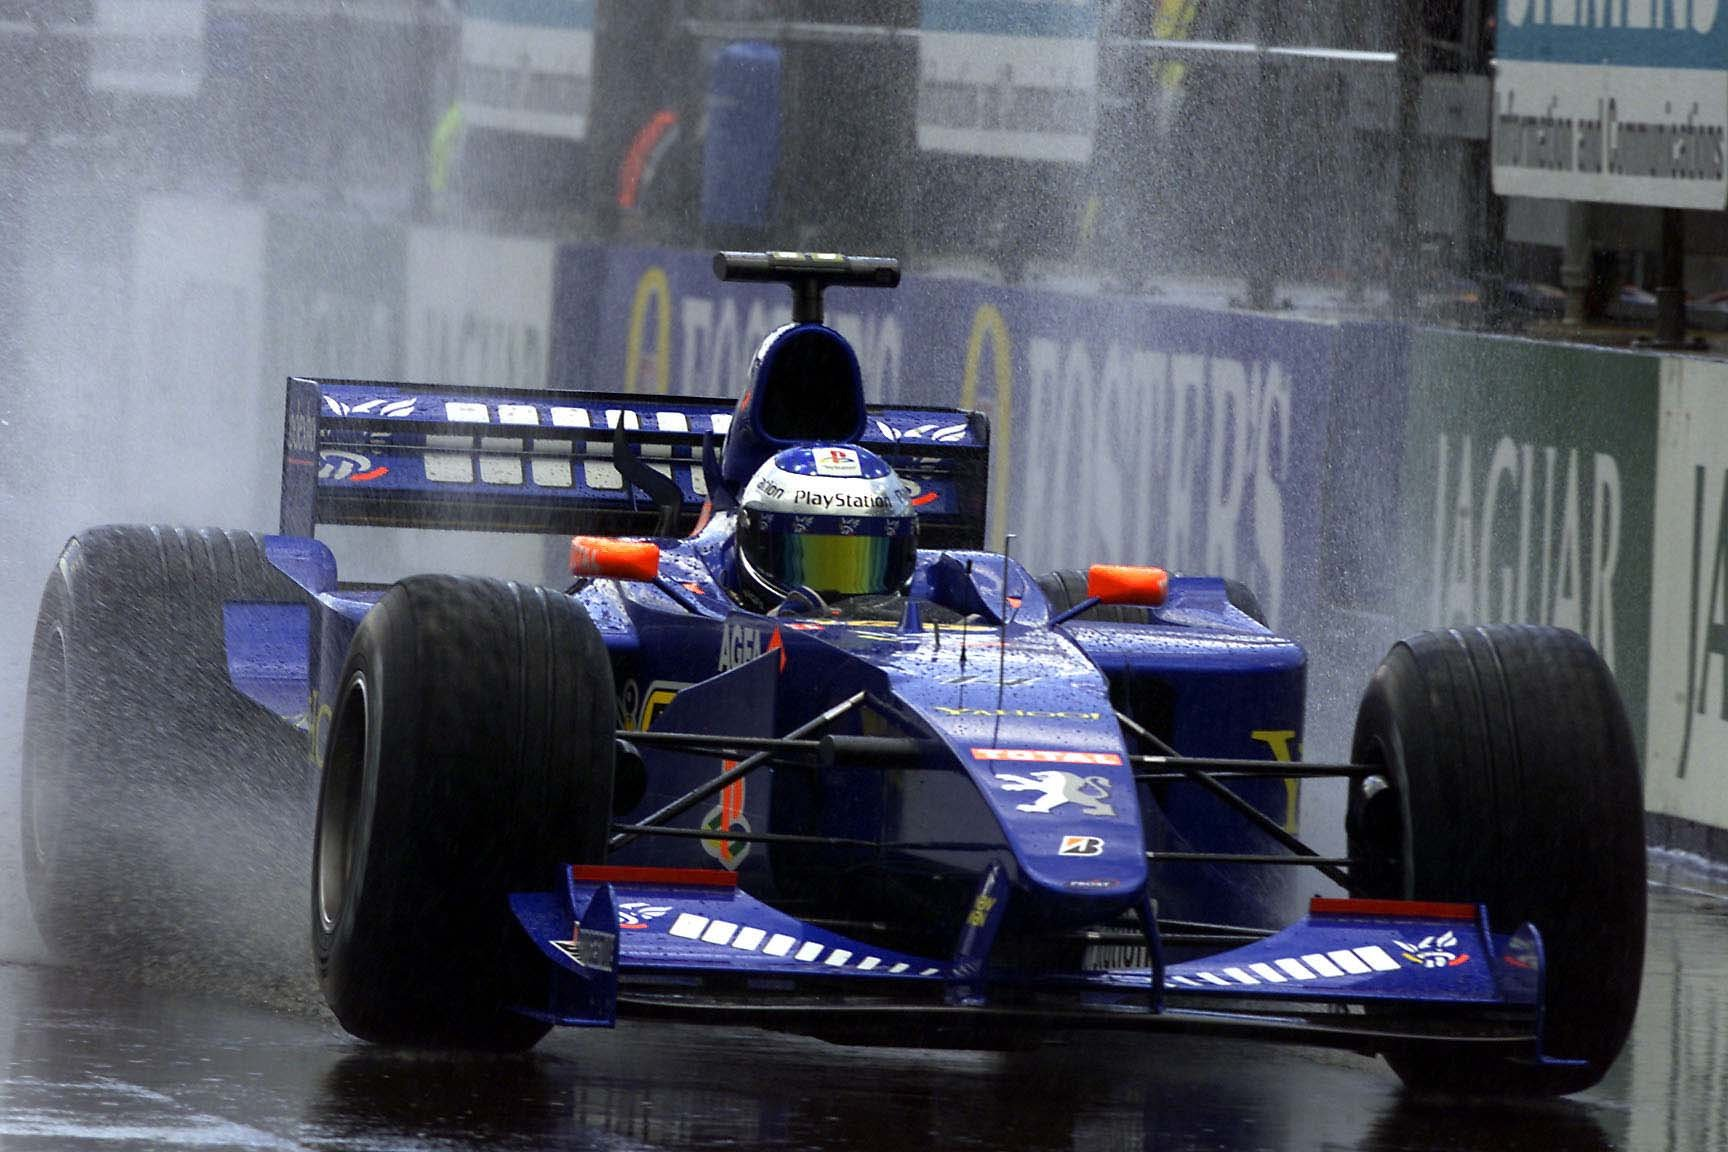 1 Prost-Peugeot AP03 HD Wallpapers | Background Images ...